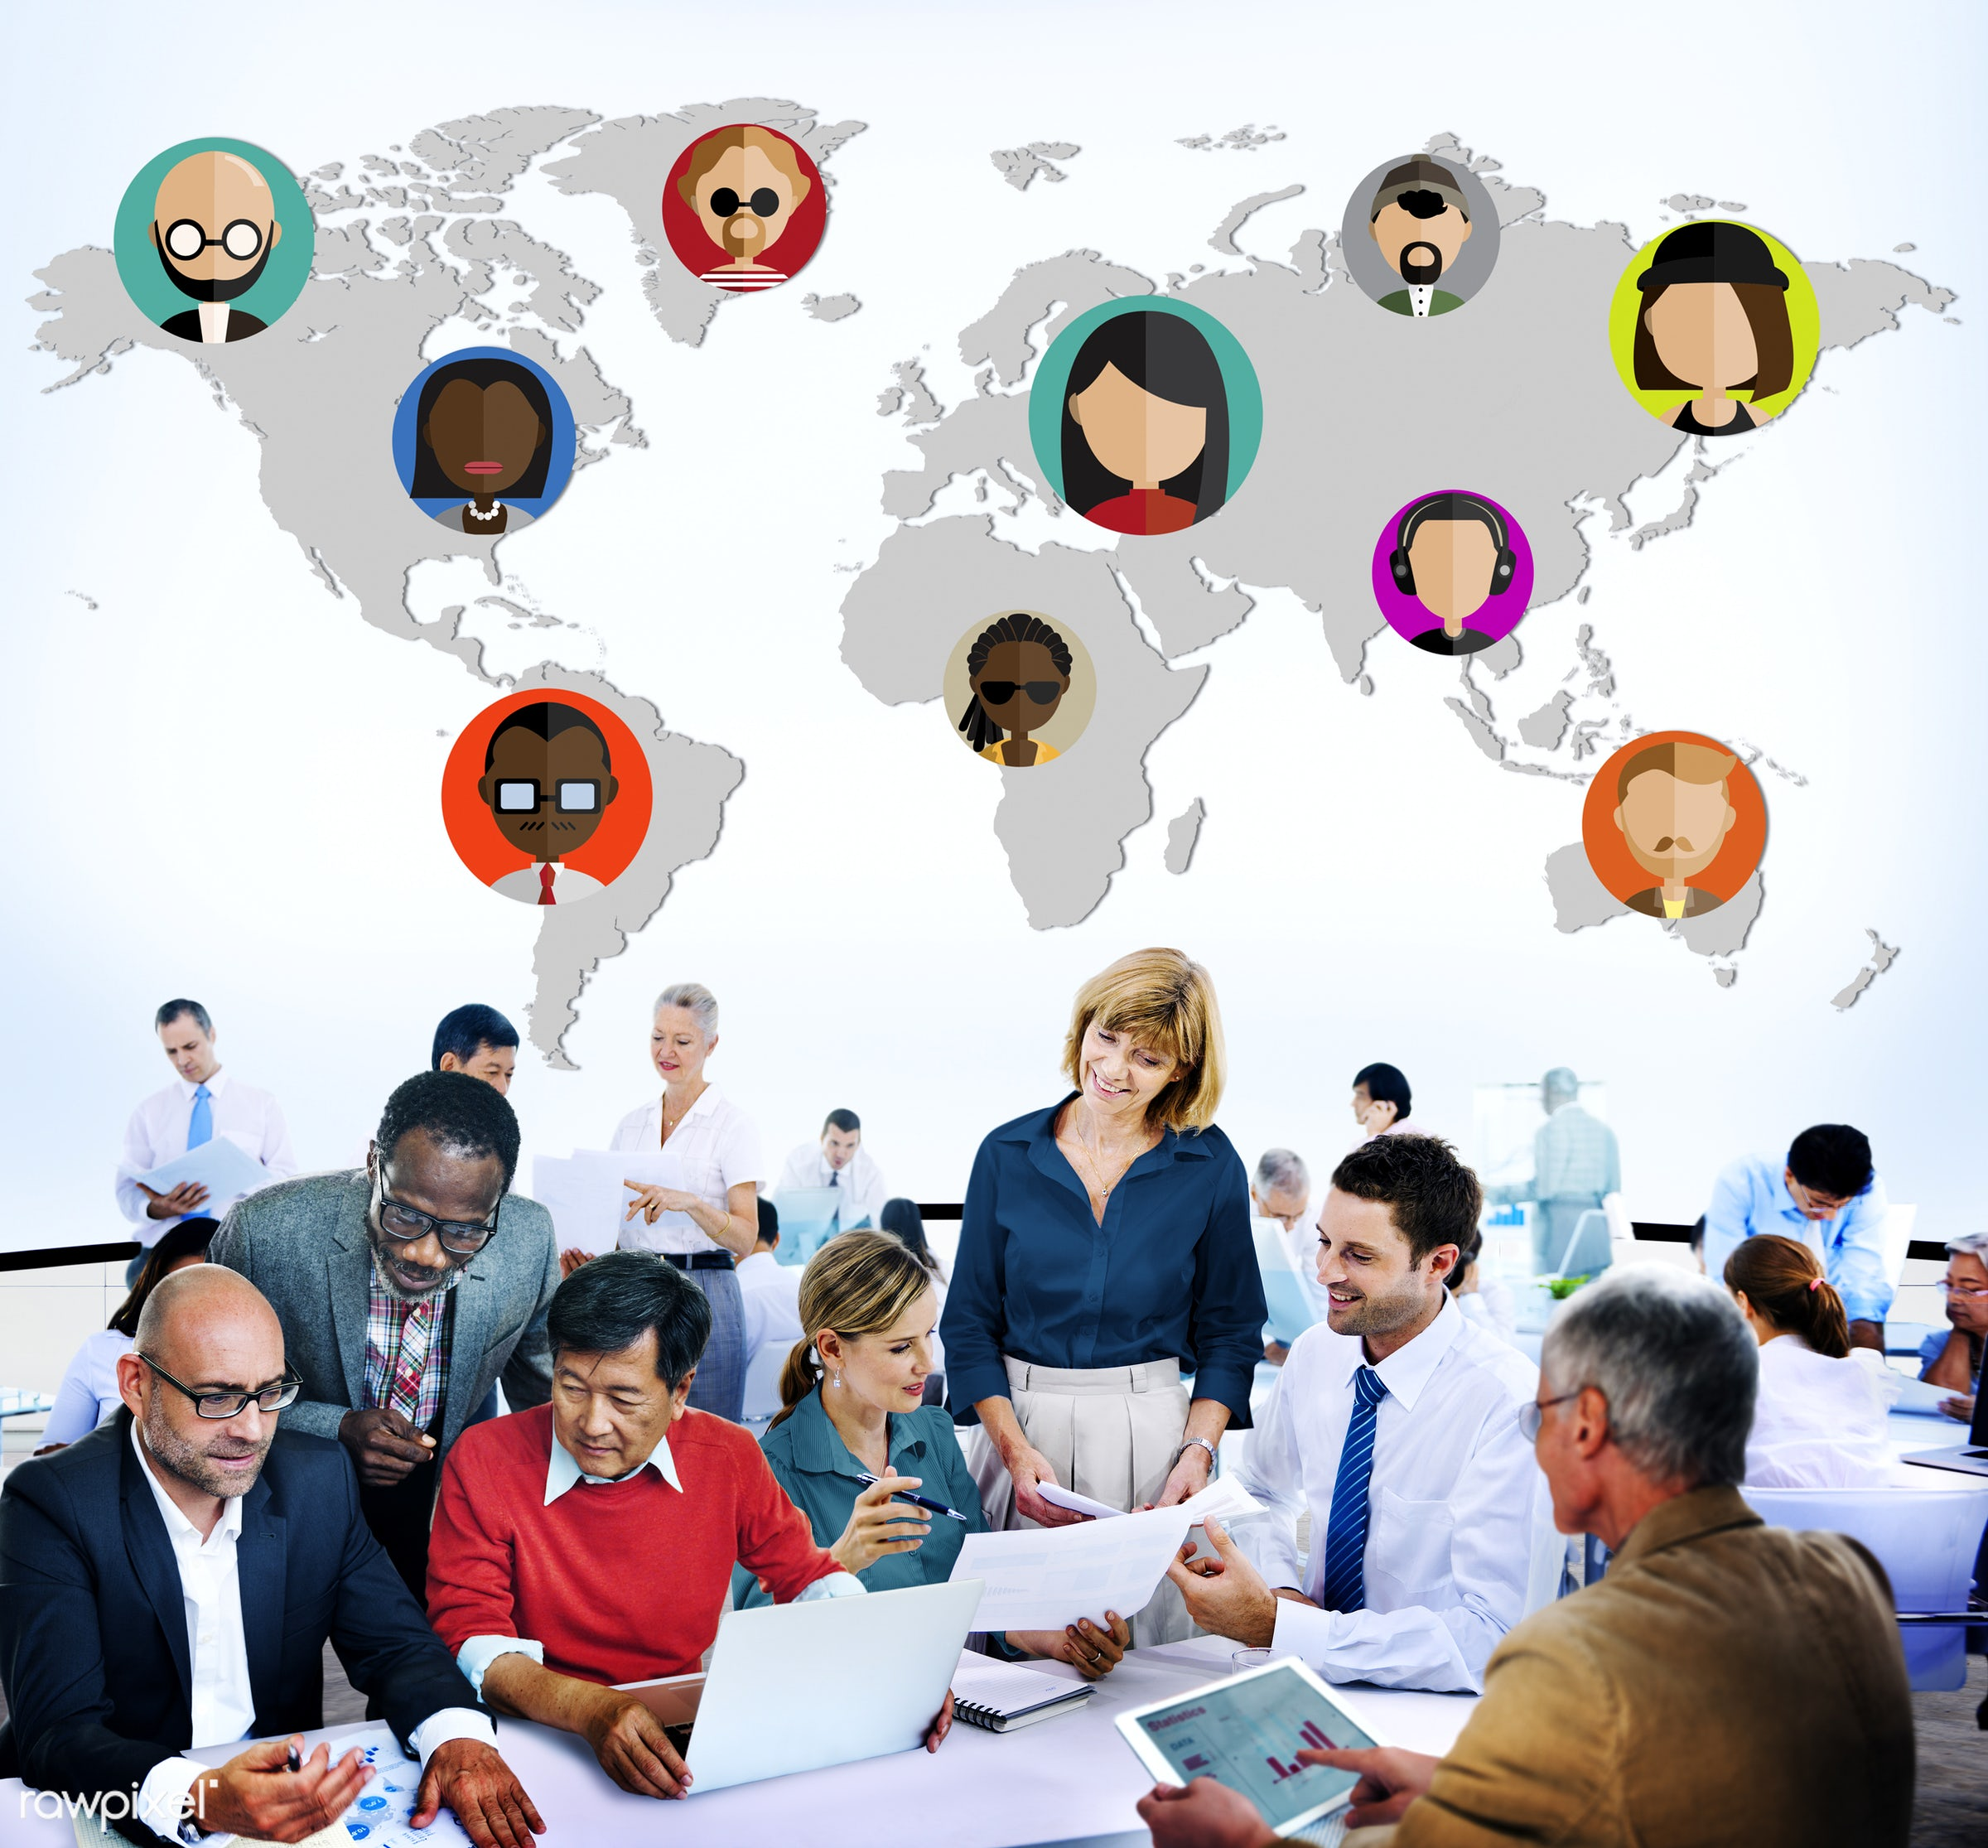 analysis, business, business people, businessmen, businesswomen, busy, cartography, communication, community, connection,...